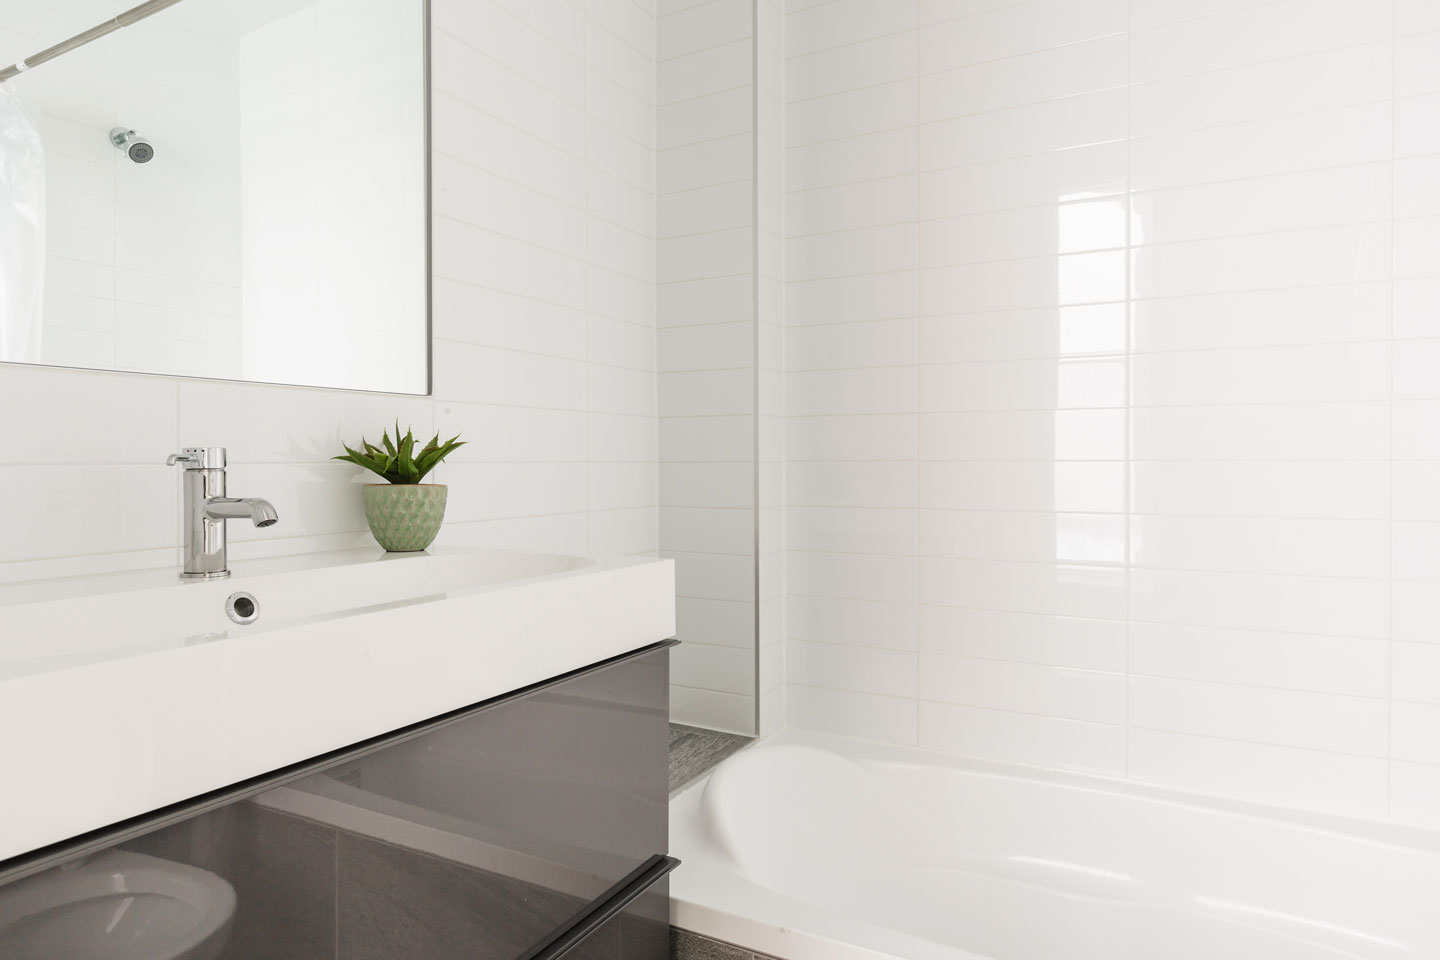 Fabfour: second bathroom with combined shower and tub